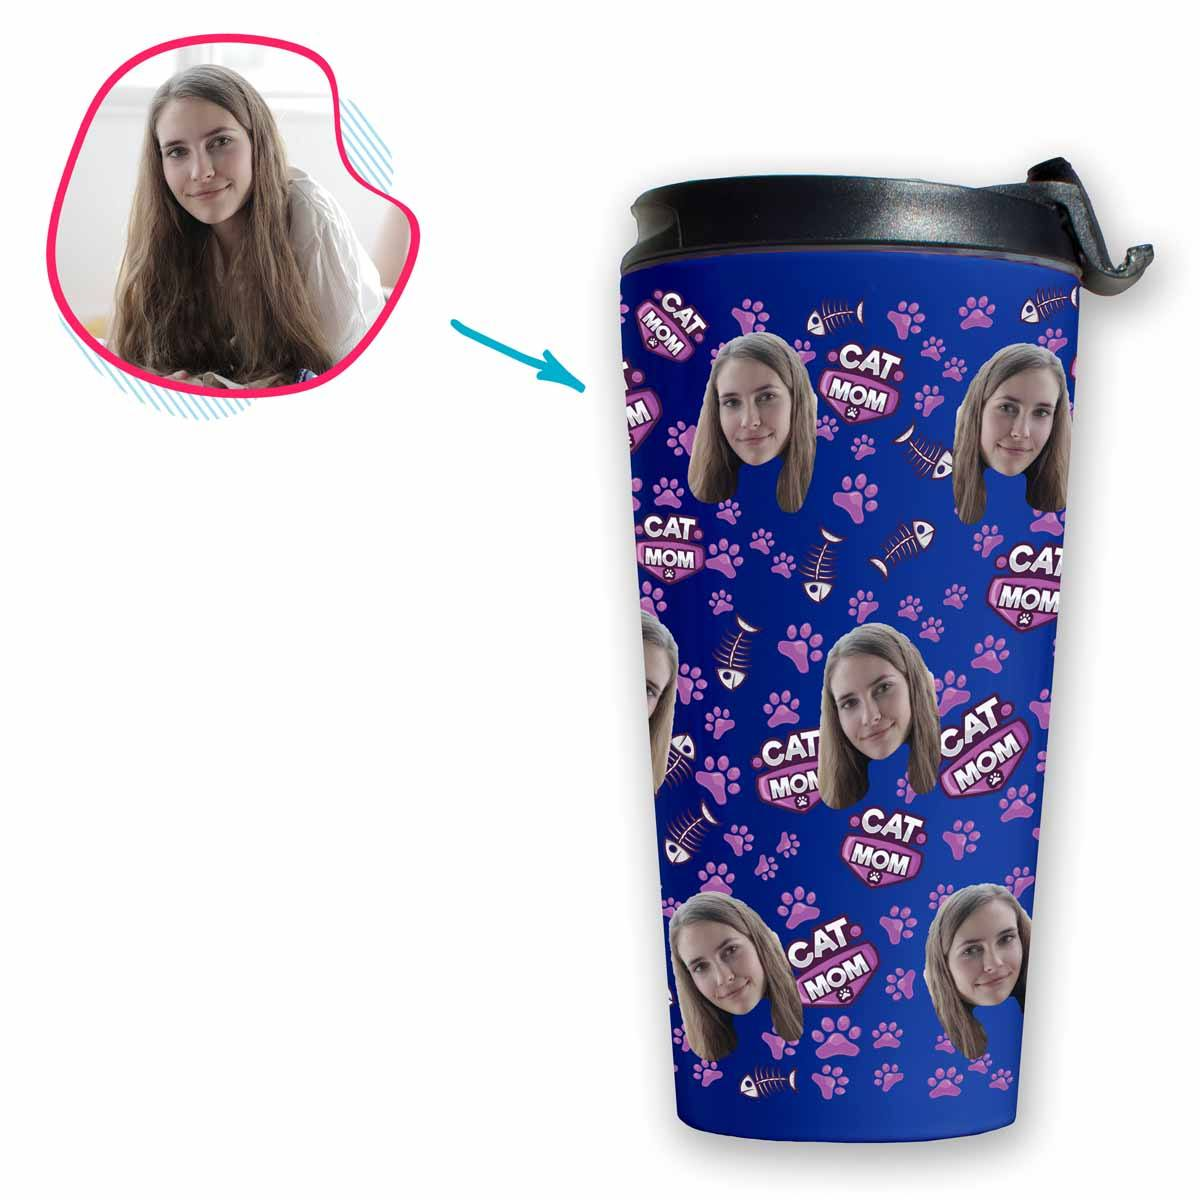 darkblue Cat Mom travel mug personalized with photo of face printed on it